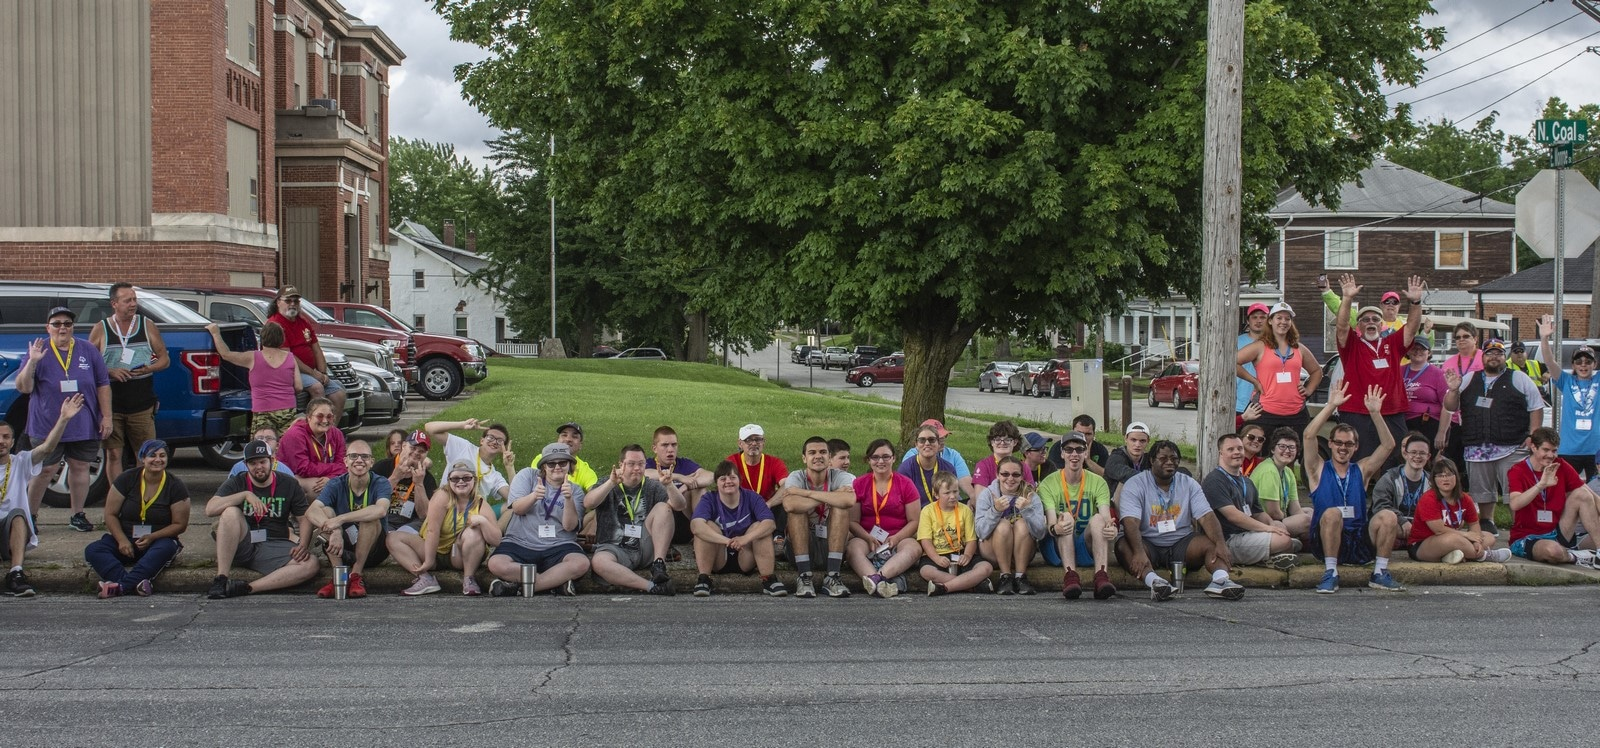 A large group of more than 75 athletes and volunteers sit on a curb and watch a parade